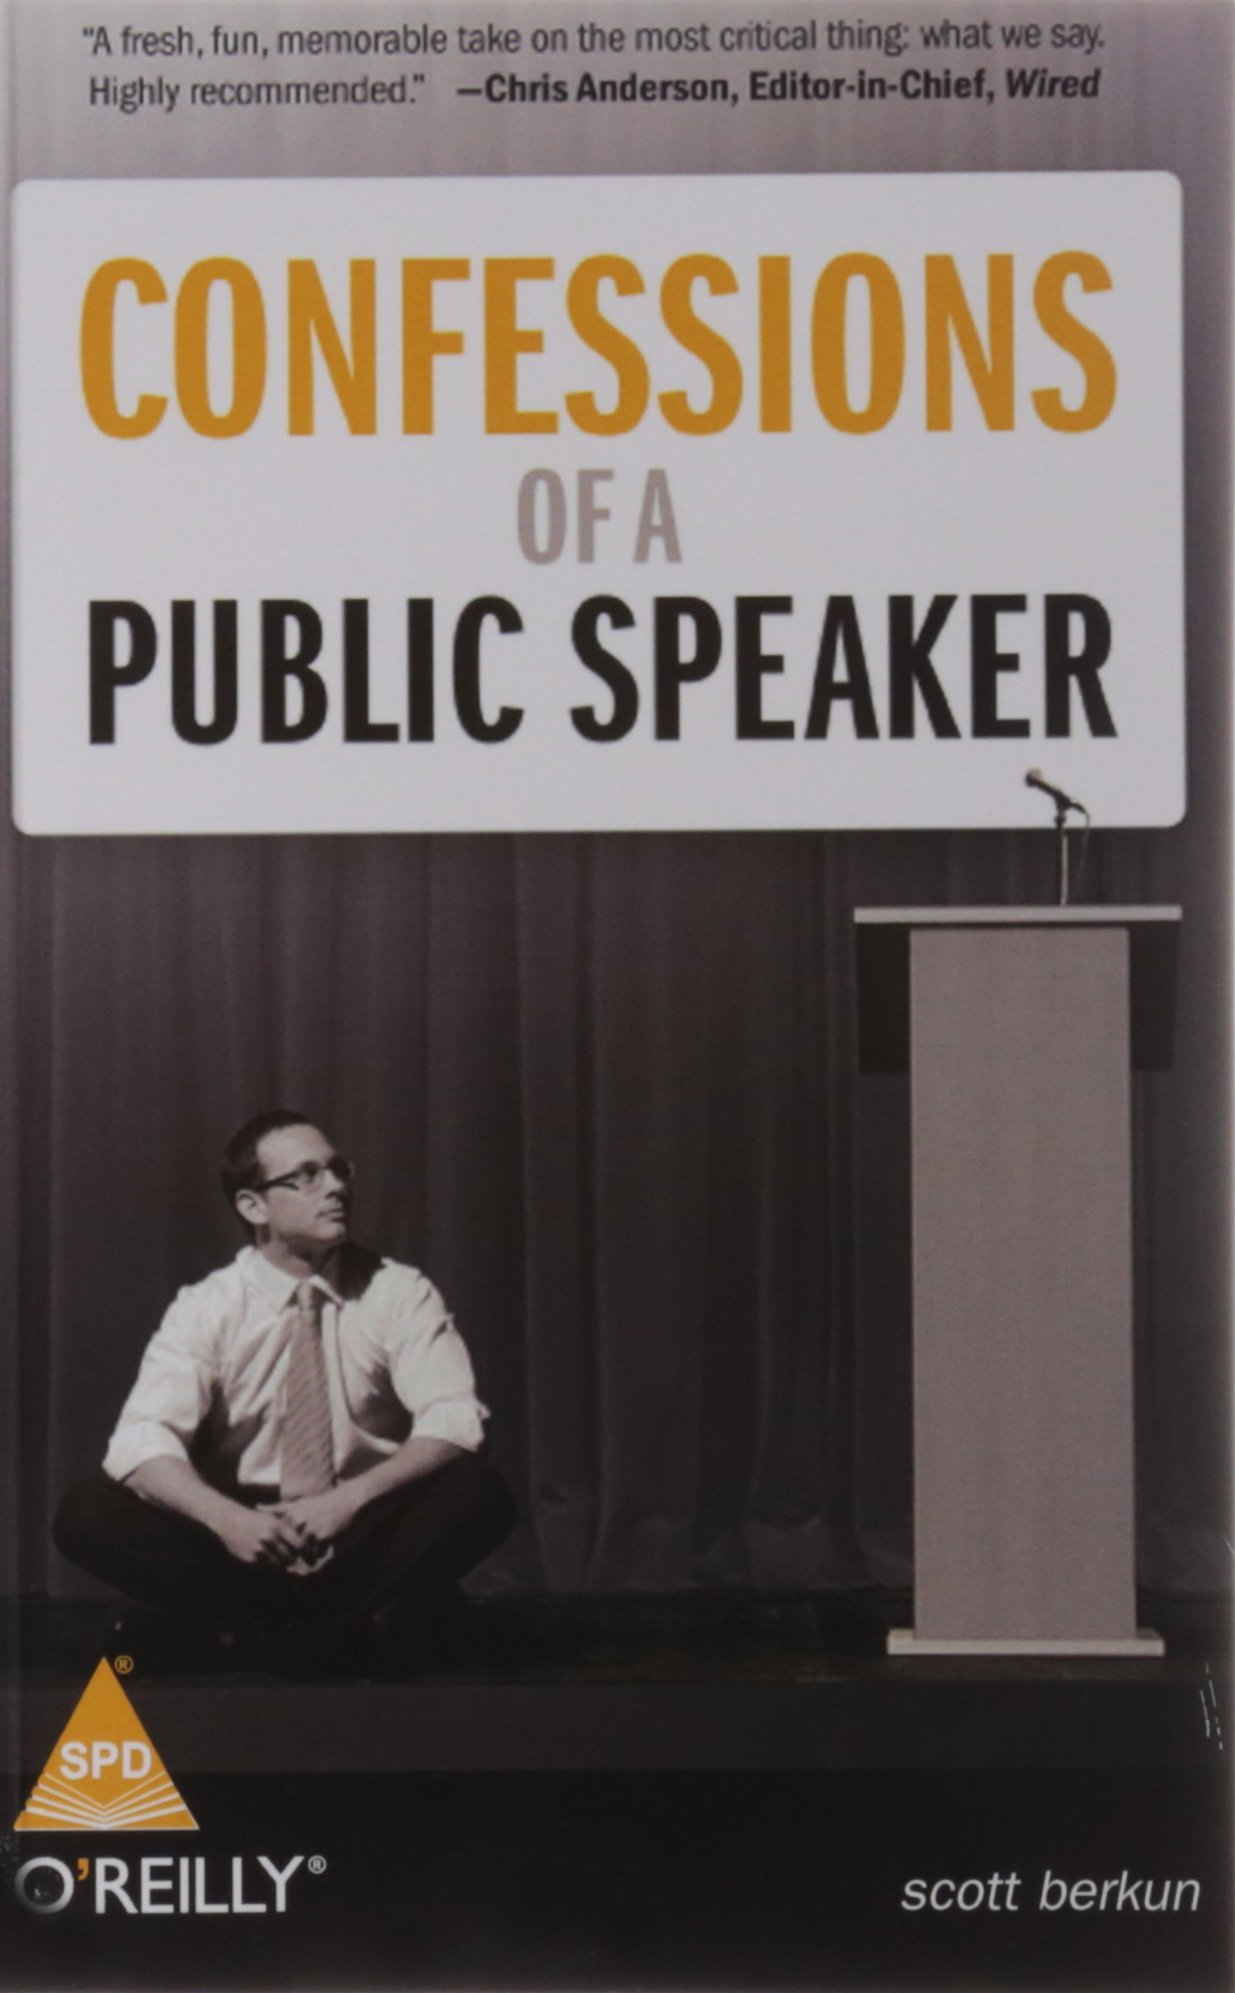 Buy Confessions of a Public Speaker Book Online at Low Prices in ...